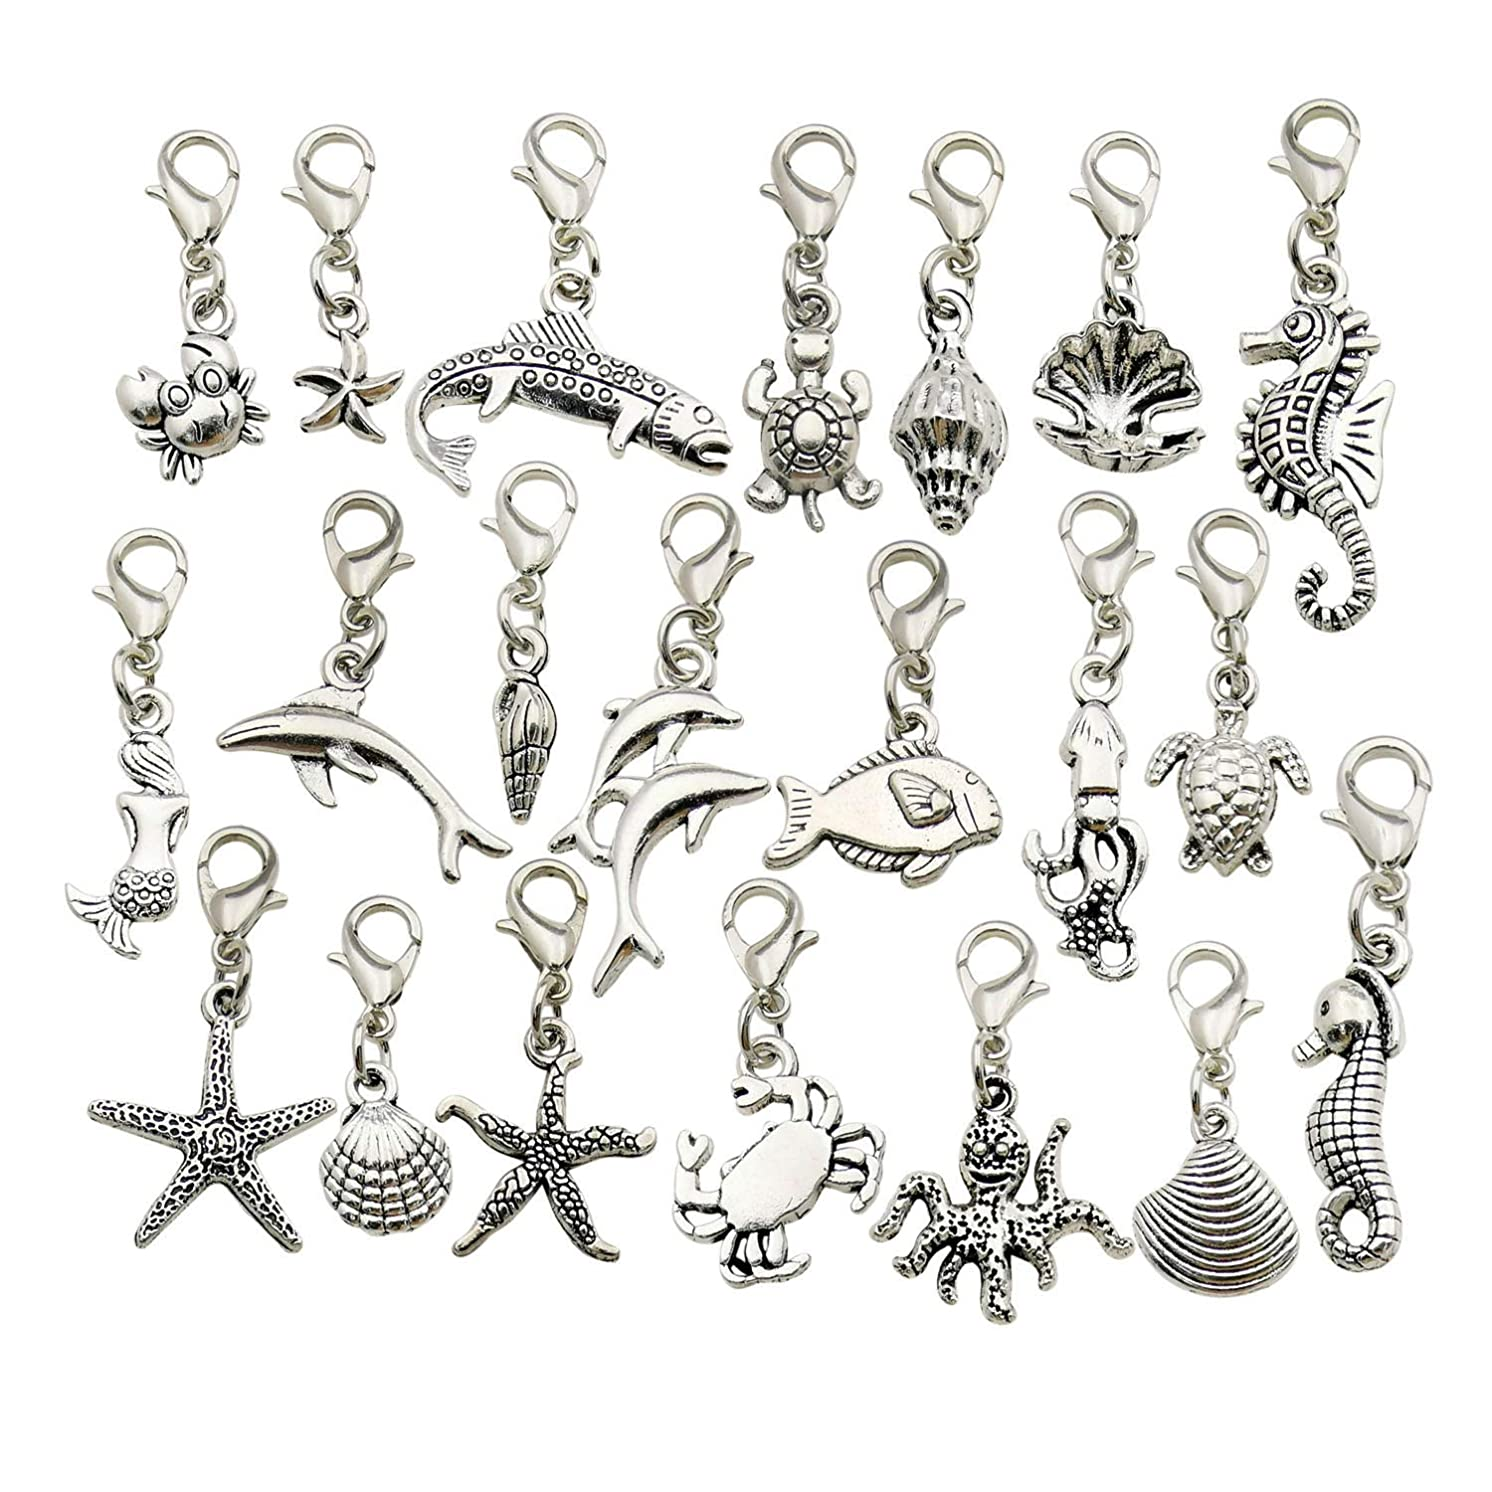 WOCRAFT 20pcs Craft Supplies Handmade Assorted Marine Life Ocean Fish Dangle Charms Pendant with Lobster Clasp for Jewelry Making Accessory Fit Floating Locket Charms Necklaces M302